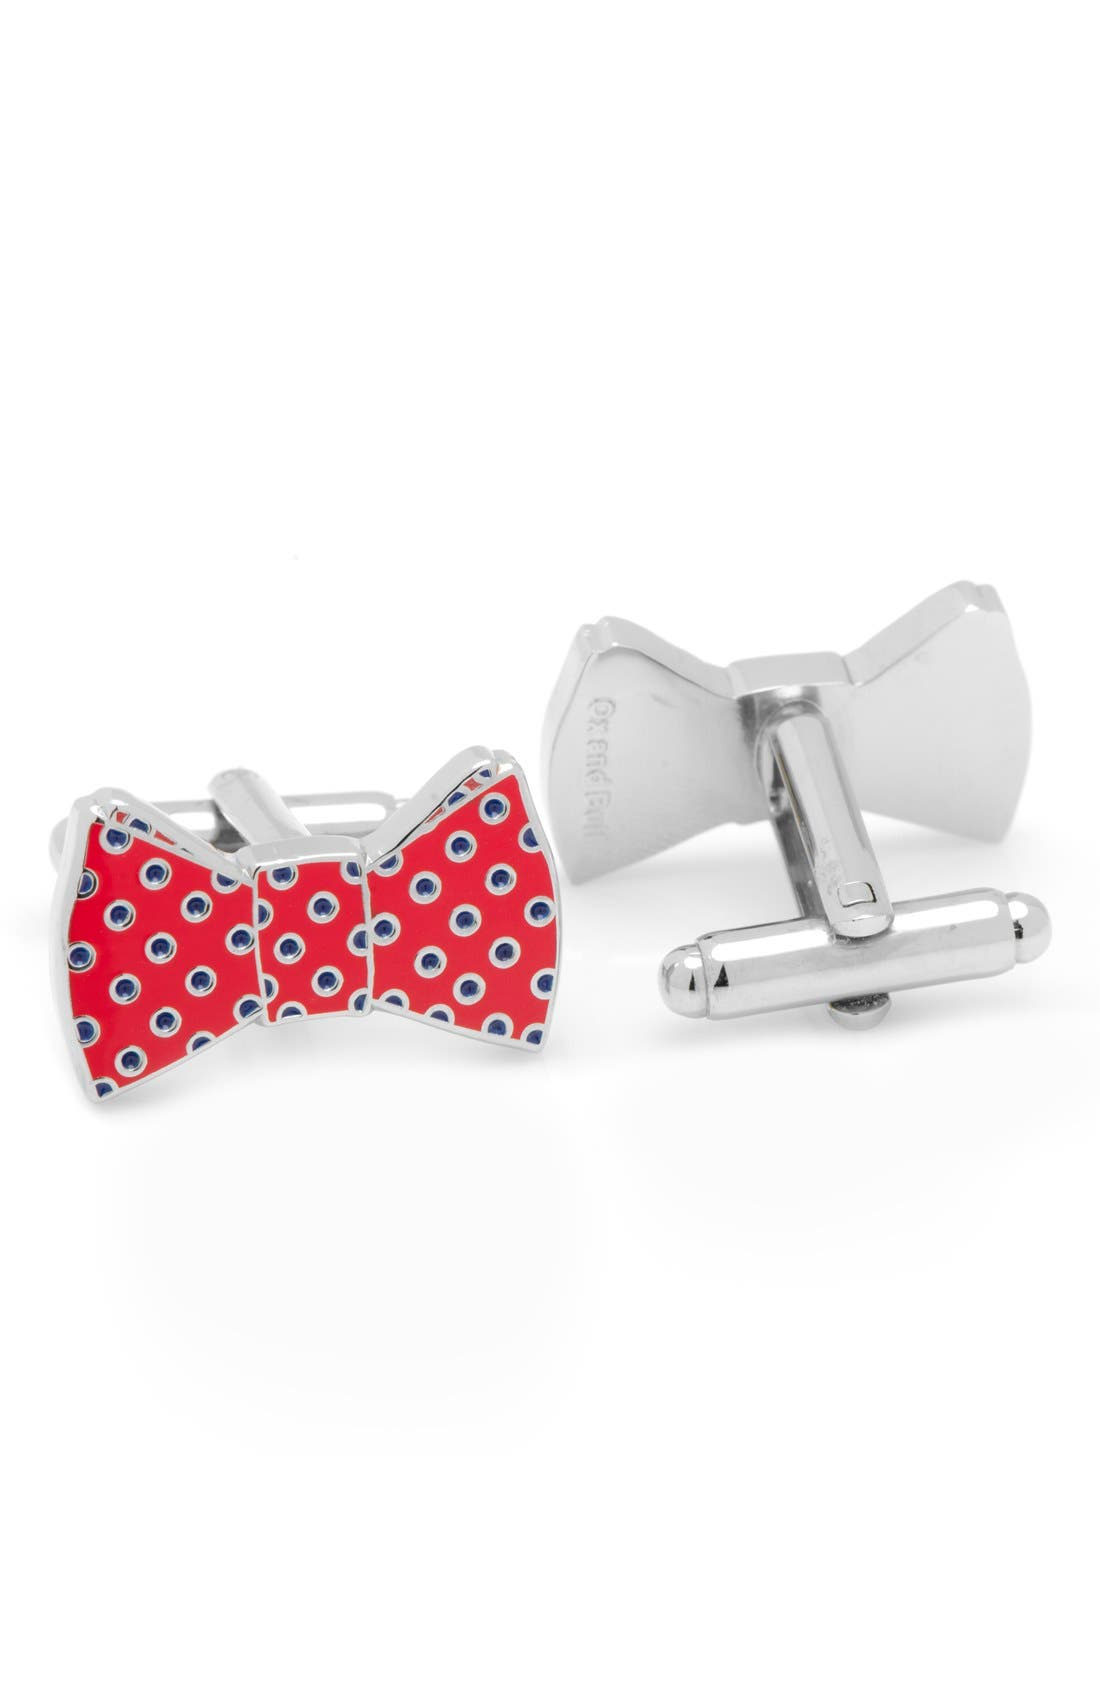 Bow Tie Cuff Links,                             Main thumbnail 1, color,                             040